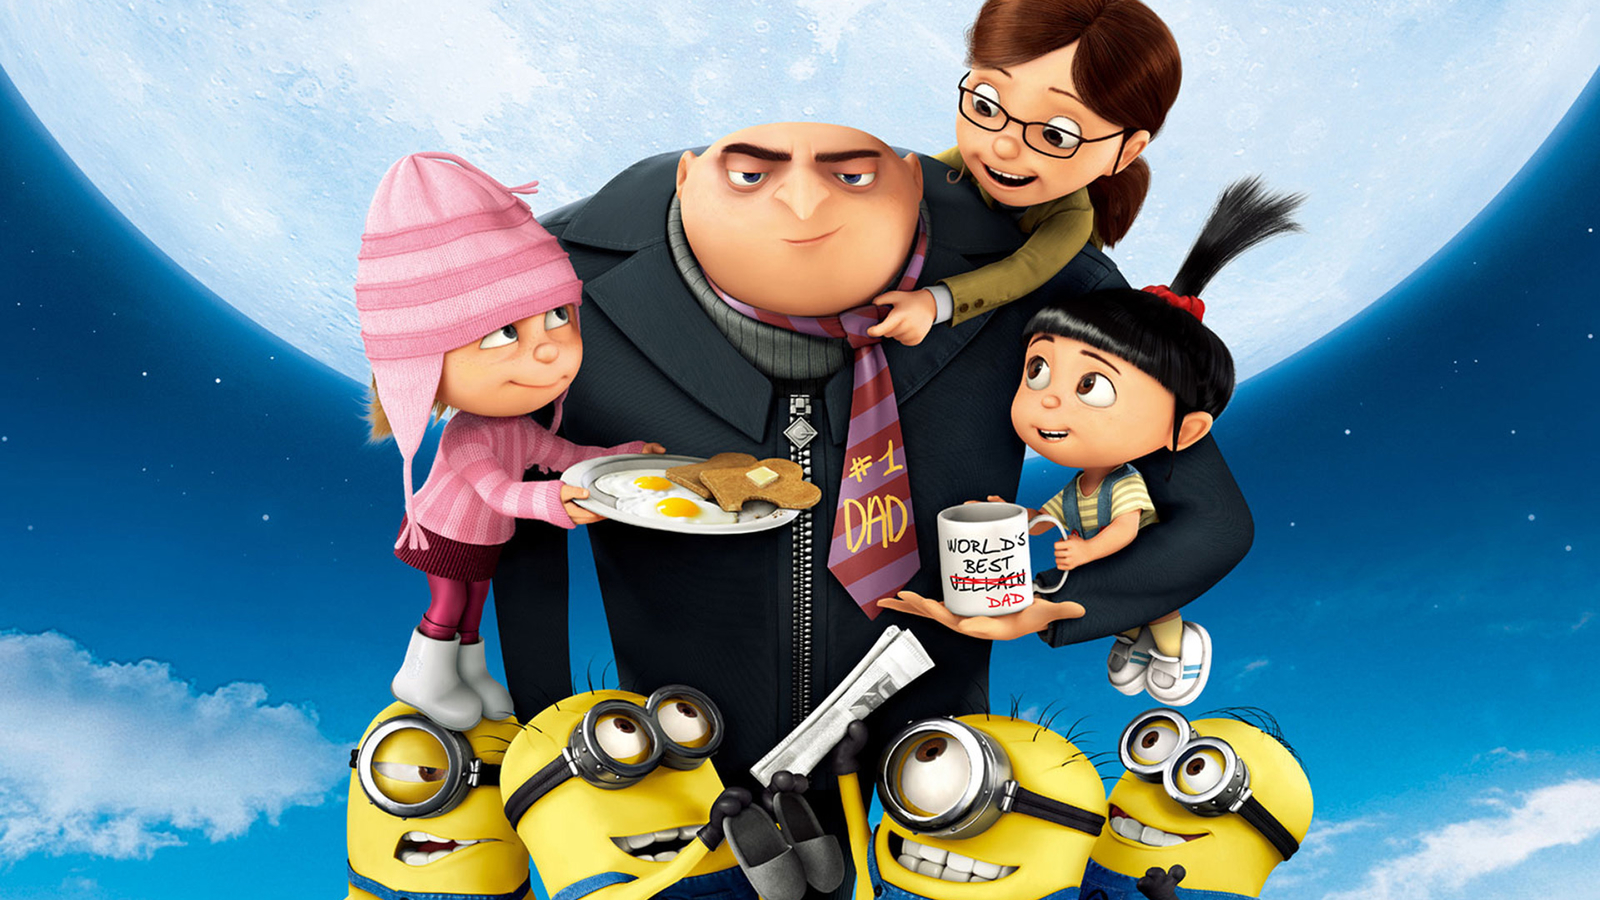 """Despicable Me"" computer wallpaper 49736"